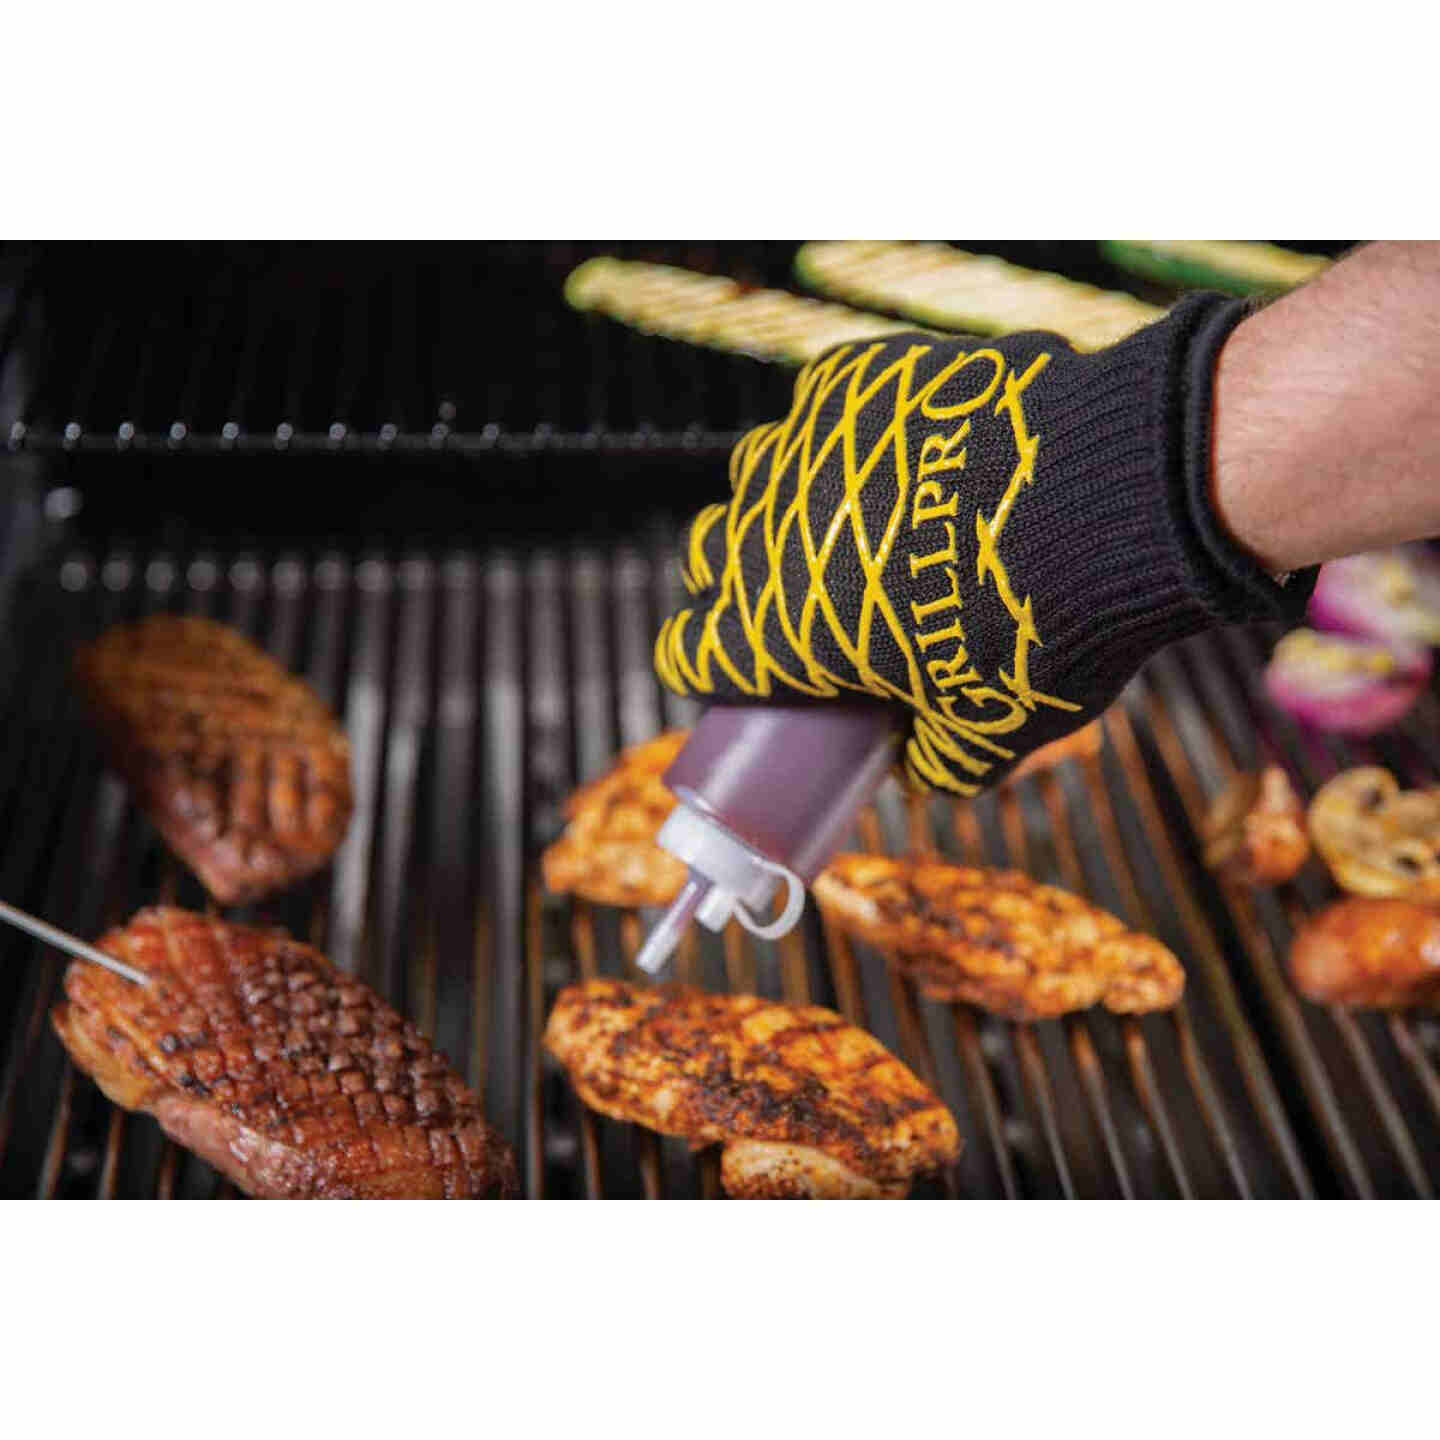 GrillPro One Size Fits Most Black & Yellow Heat Resistant Barbeque Mitt Image 3